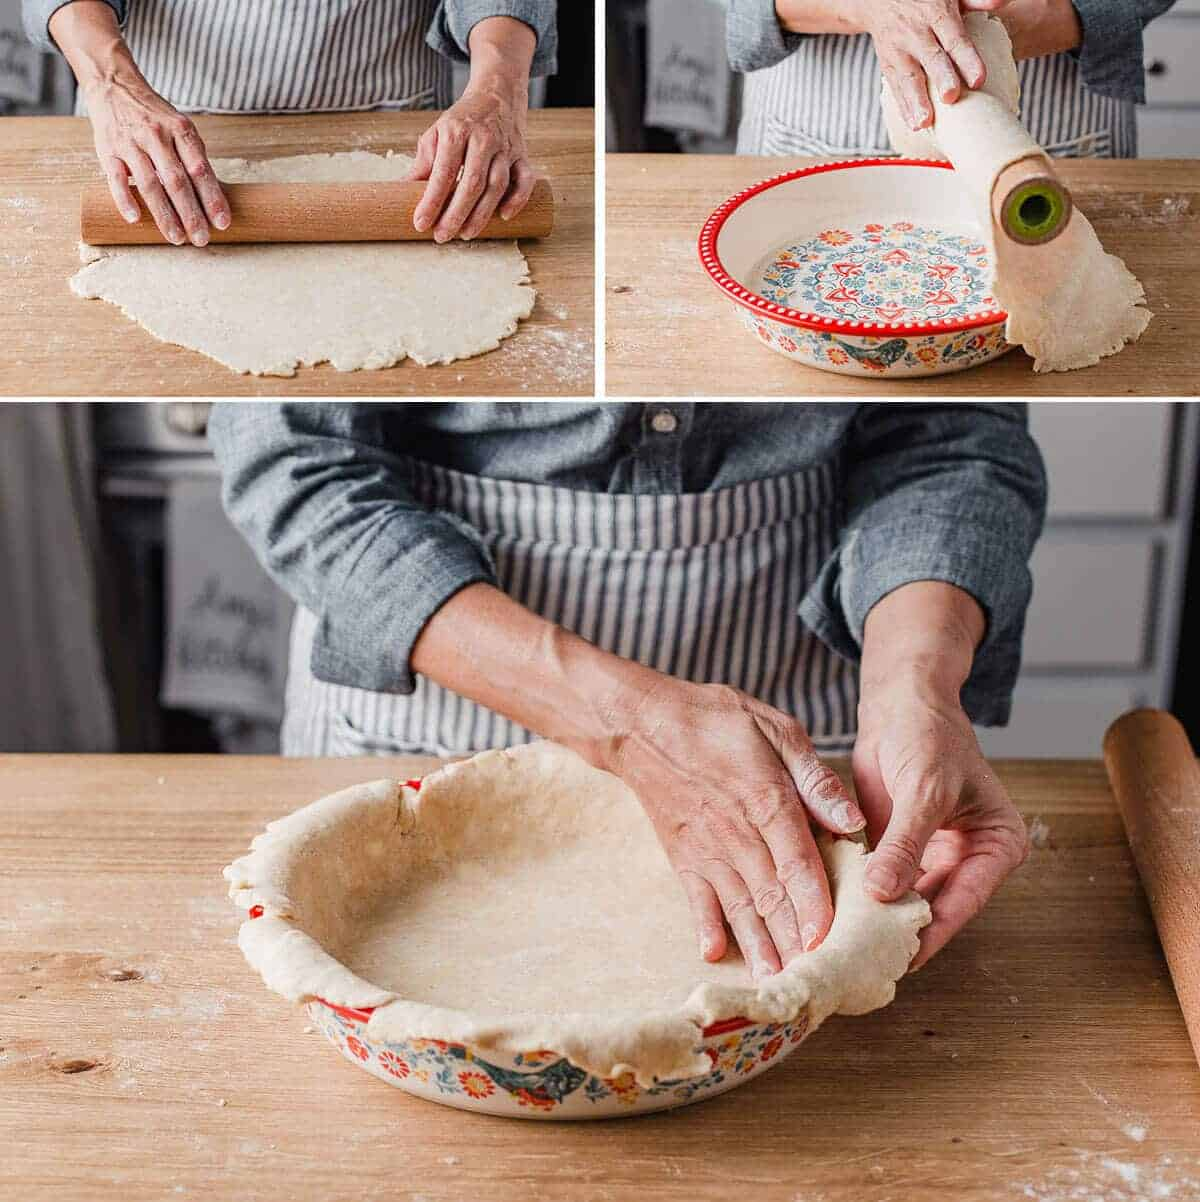 A woman rolling out the pie crust and placing it on a pie plate.